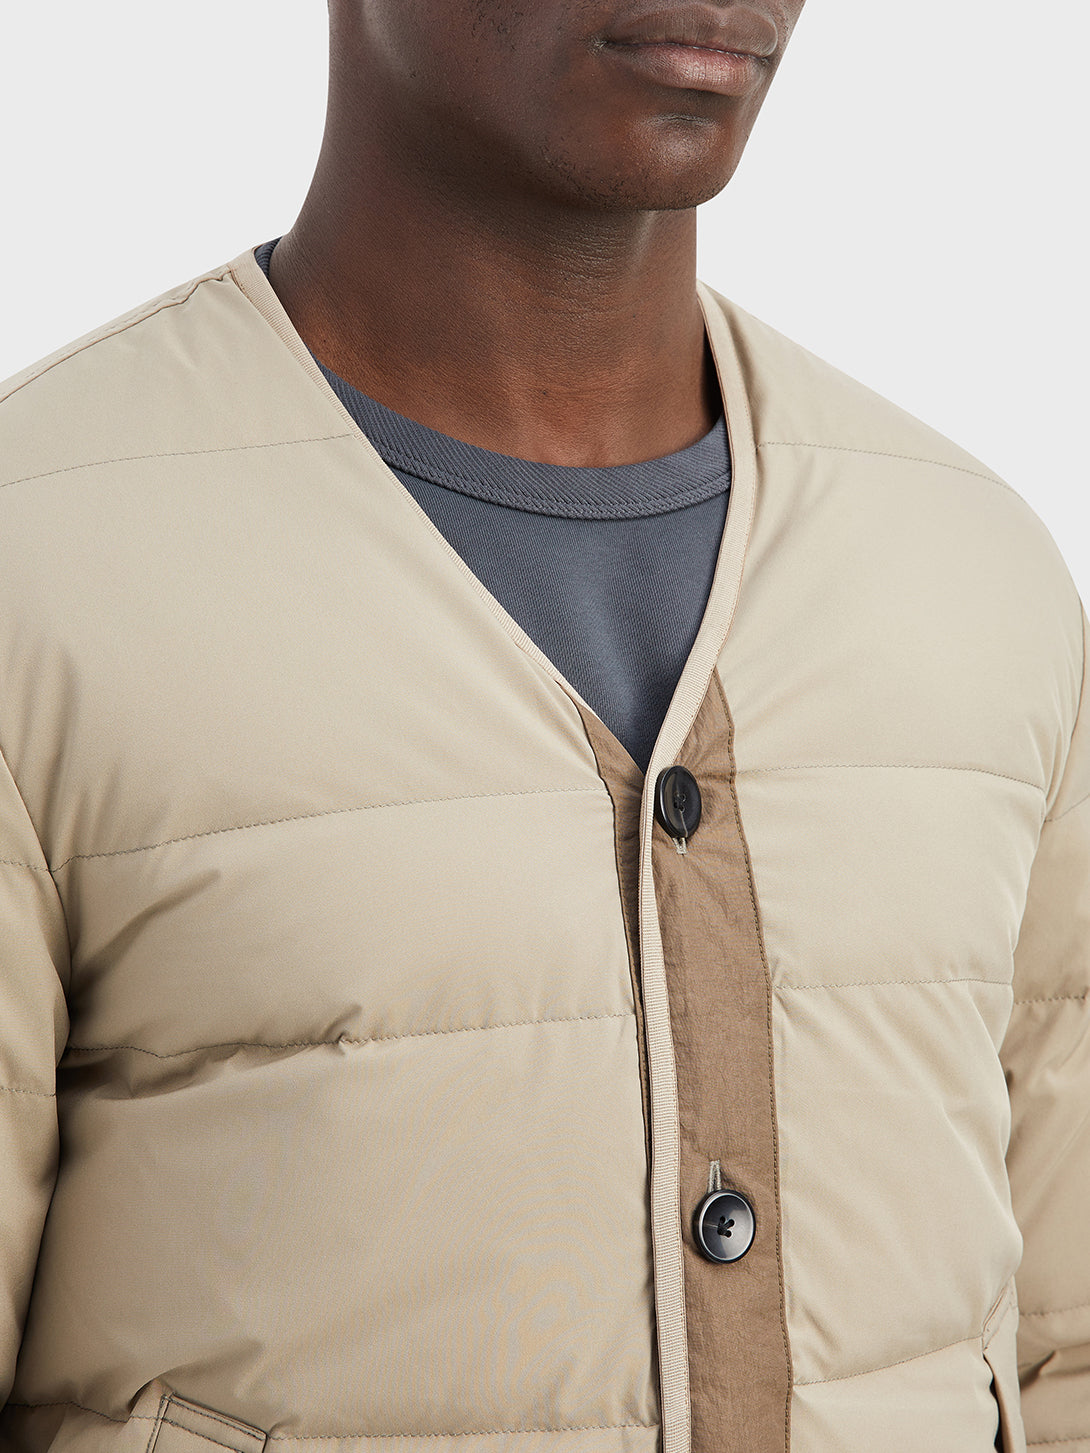 black friday deals ONS Clothing Men's outerwear in KHAKI